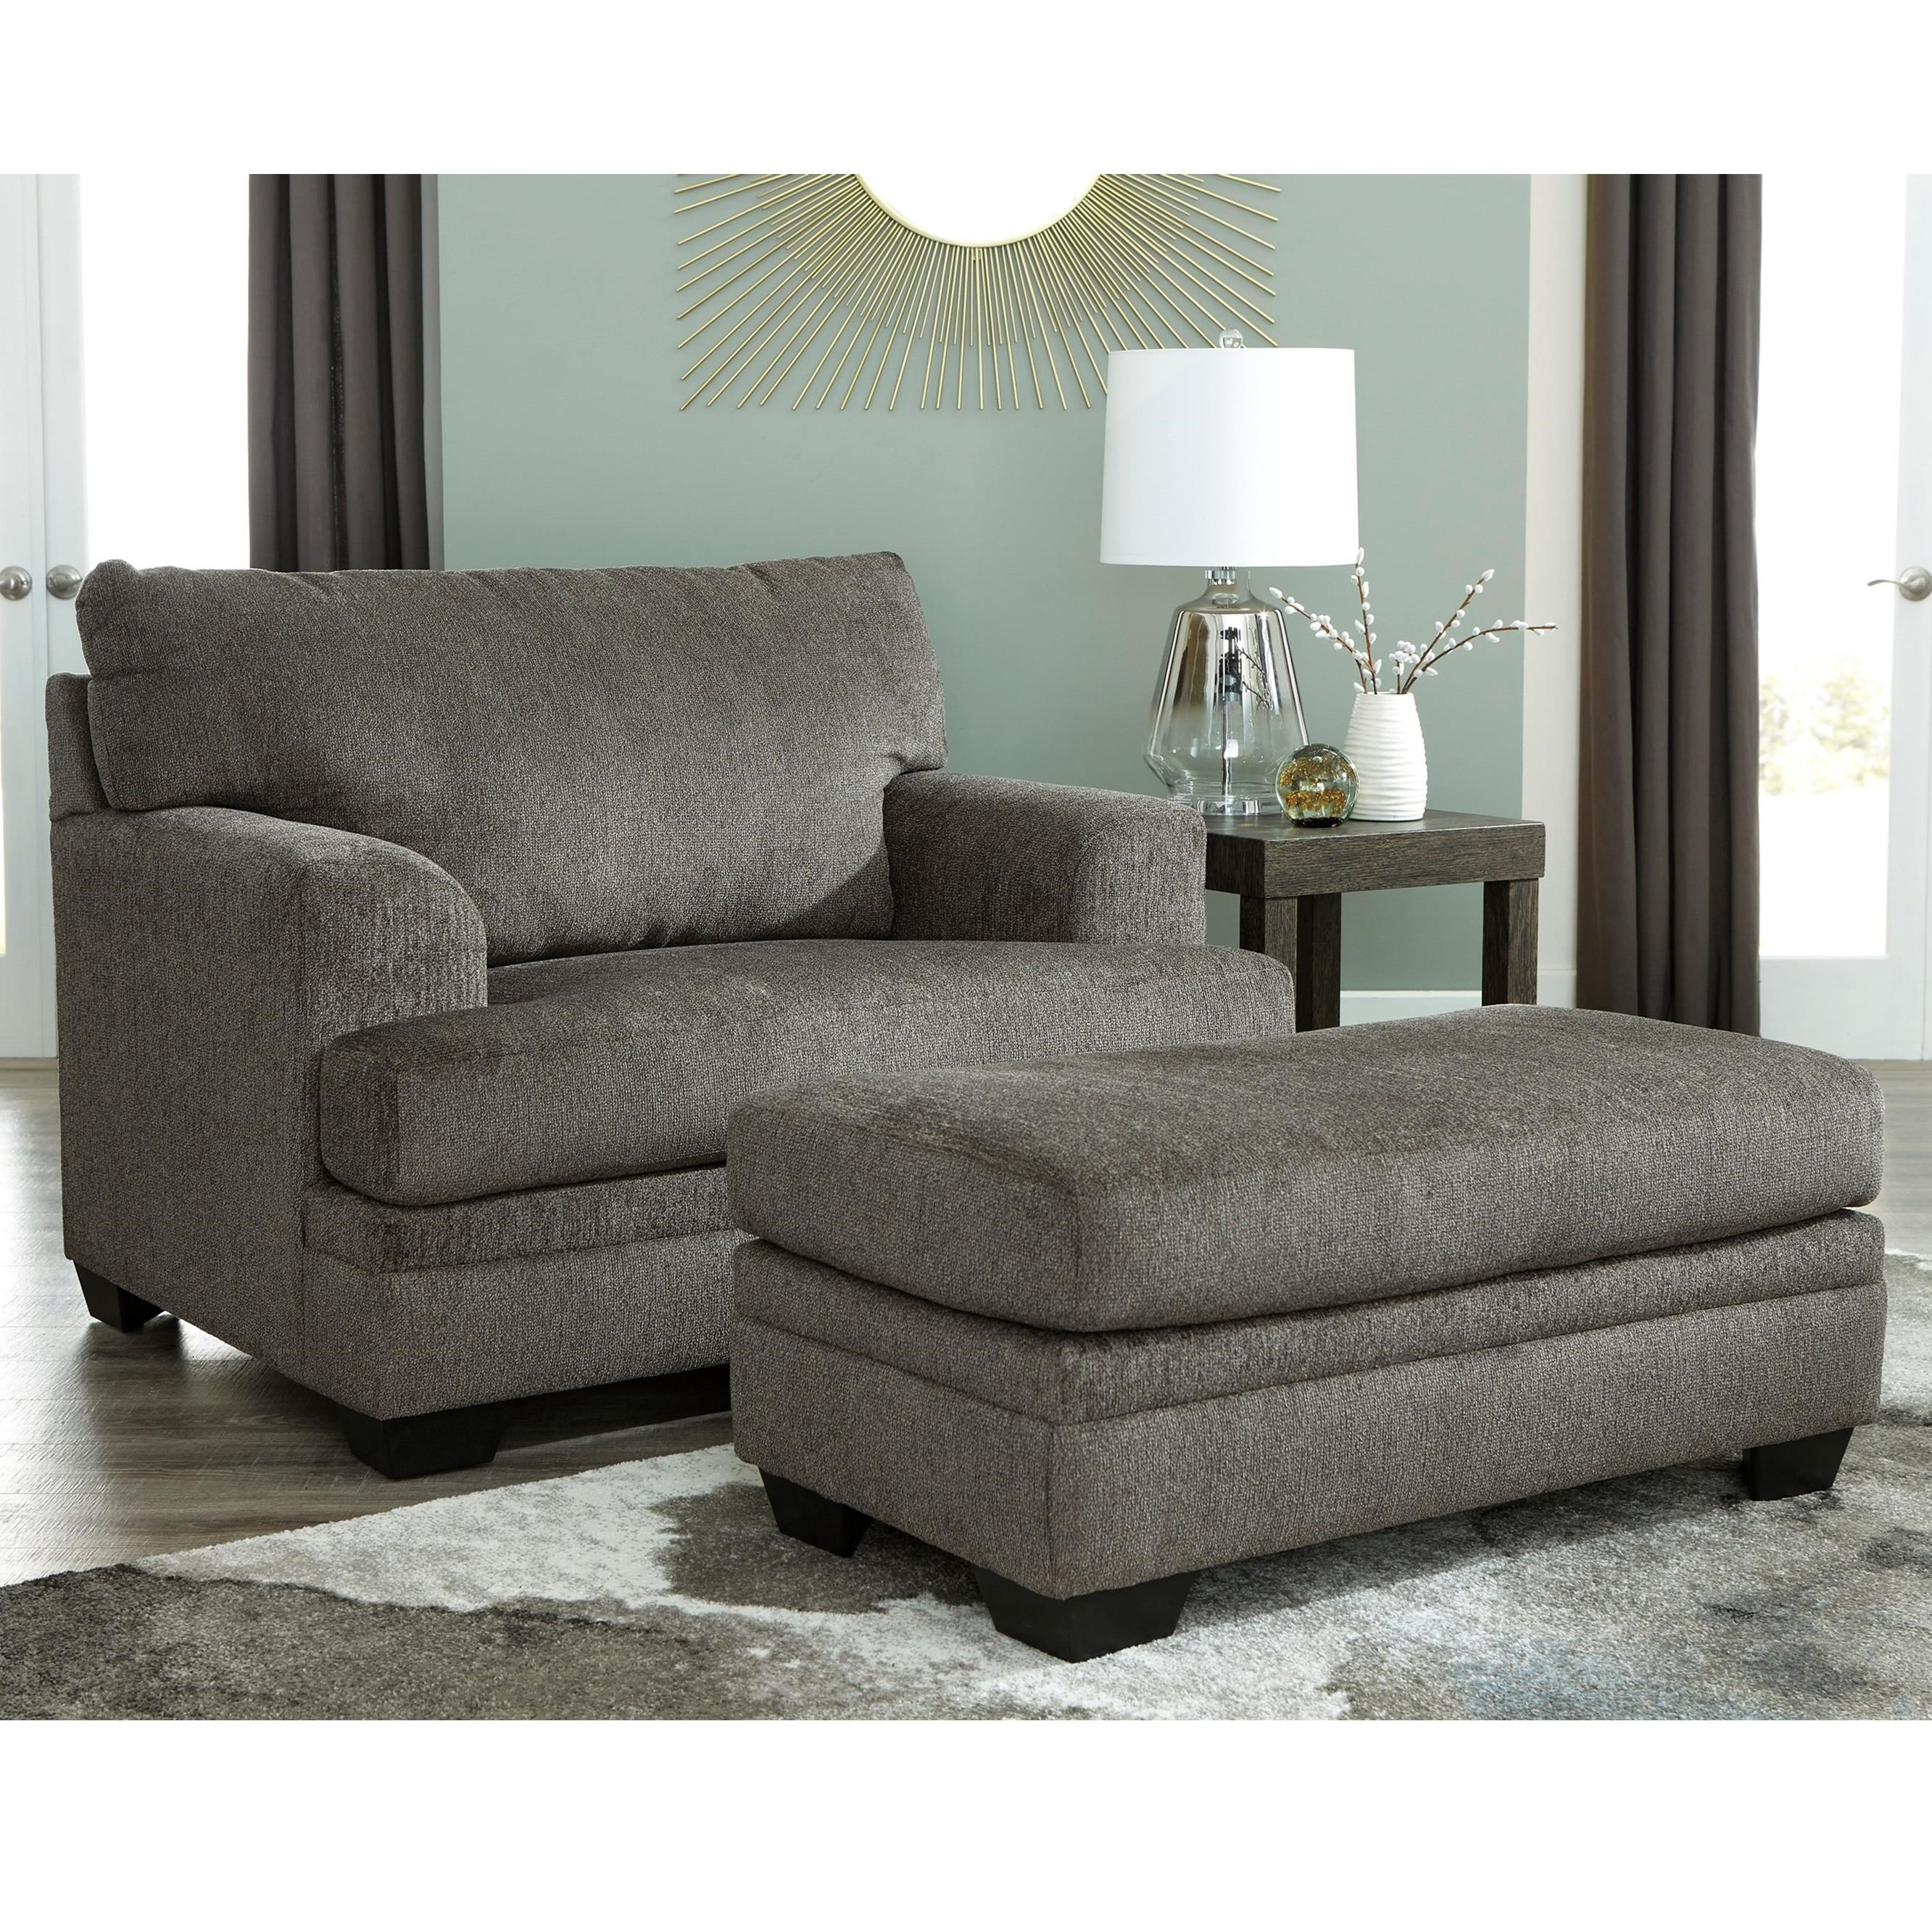 Drew Chair and a Half with Ottoman by Signature at Walker's Furniture